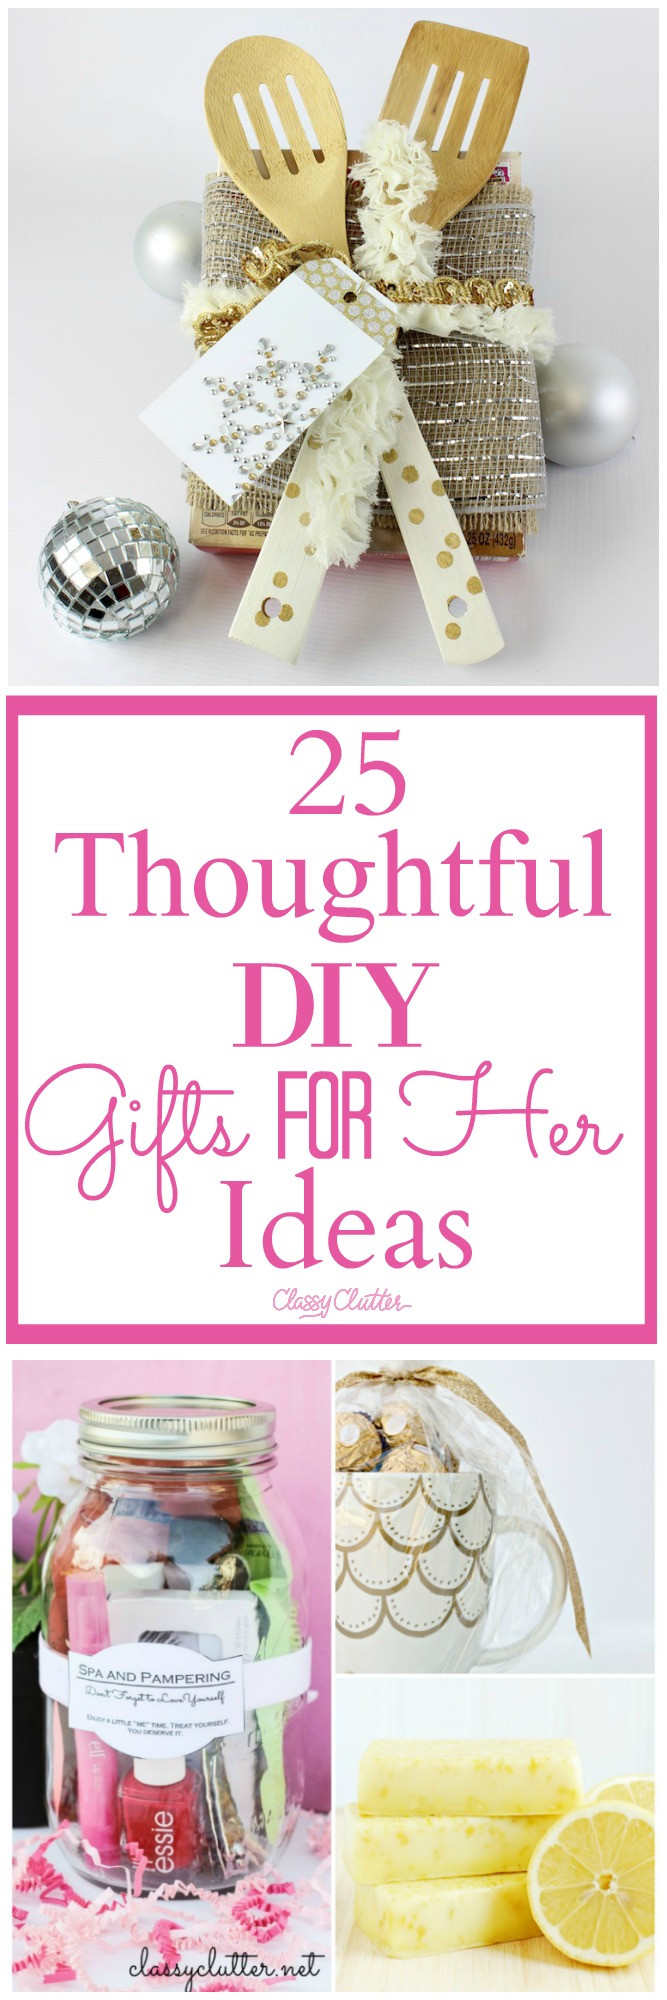 Best ideas about DIY Gift Baskets For Her . Save or Pin 25 Thoughtful DIY Gifts for Her Ideas Classy Clutter Now.